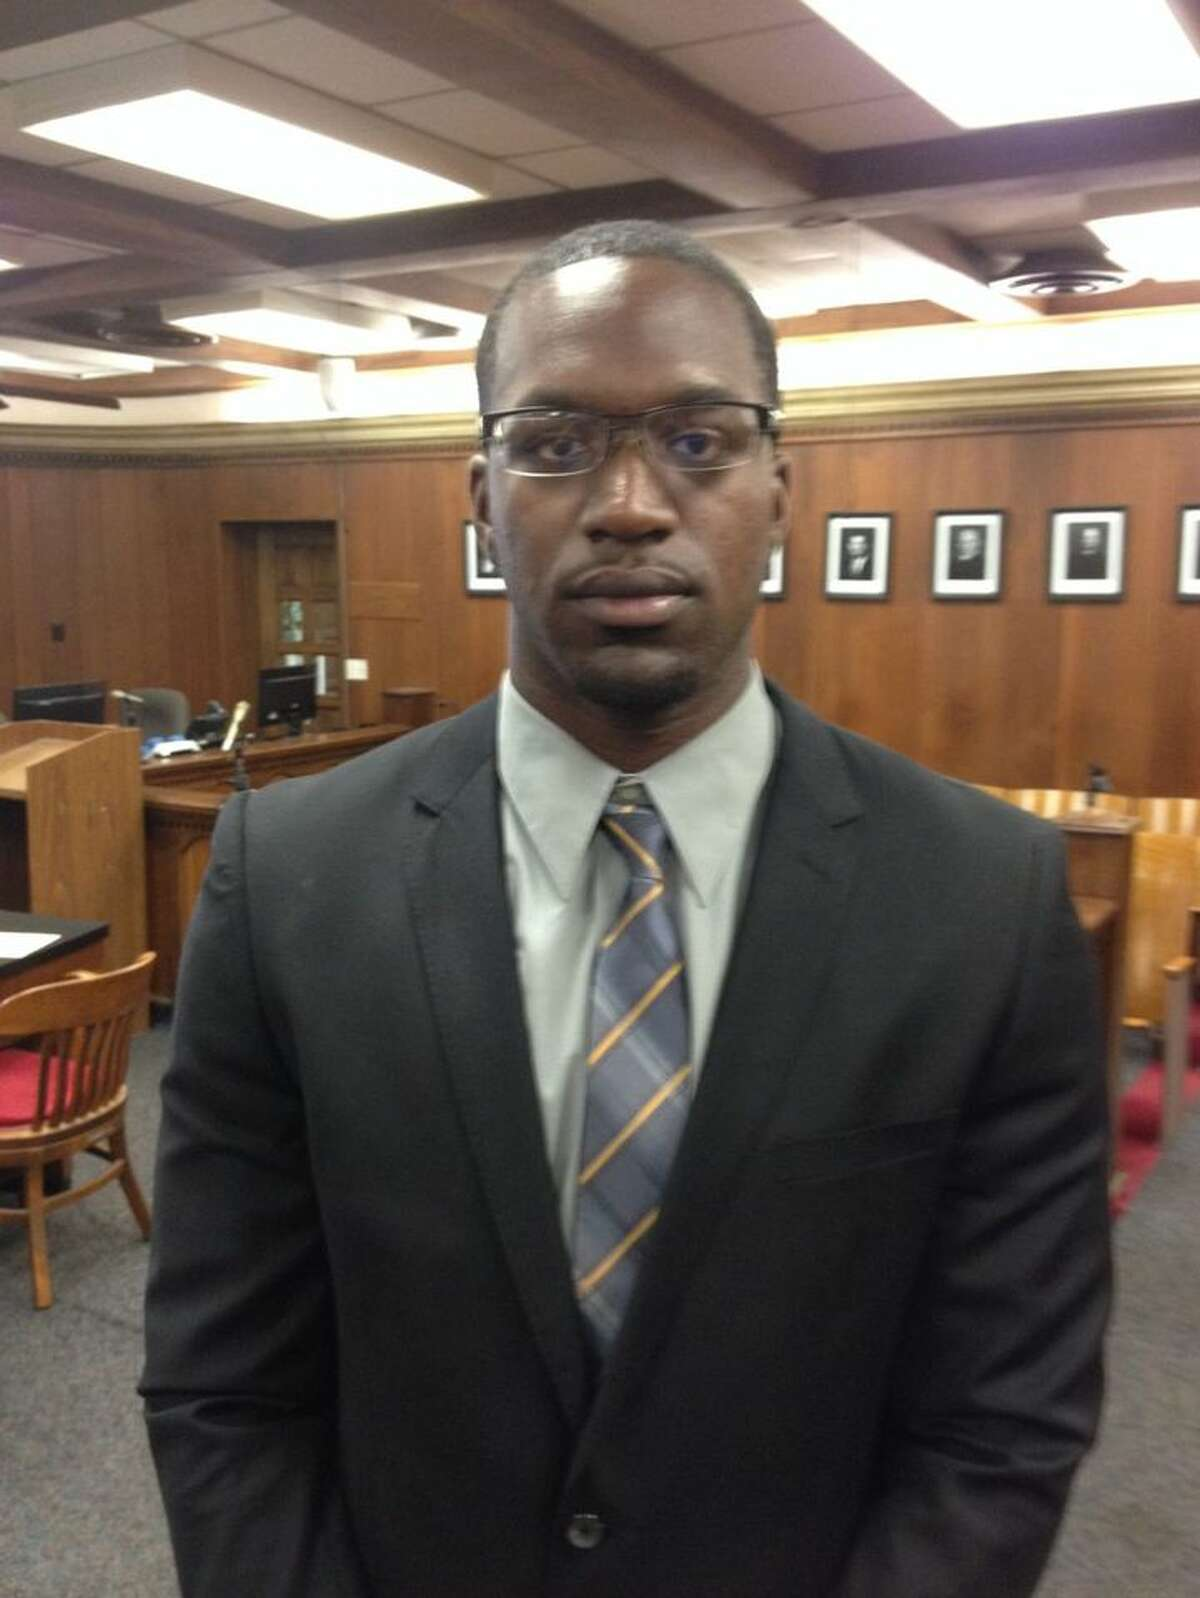 Baylor football player Sam Ukwuachu, a Pearland graduate, was sentenced to six months in jail and 10 years probation after he was found guity of second-degree sexual assault upon a former Baylor soccer player in 2013.